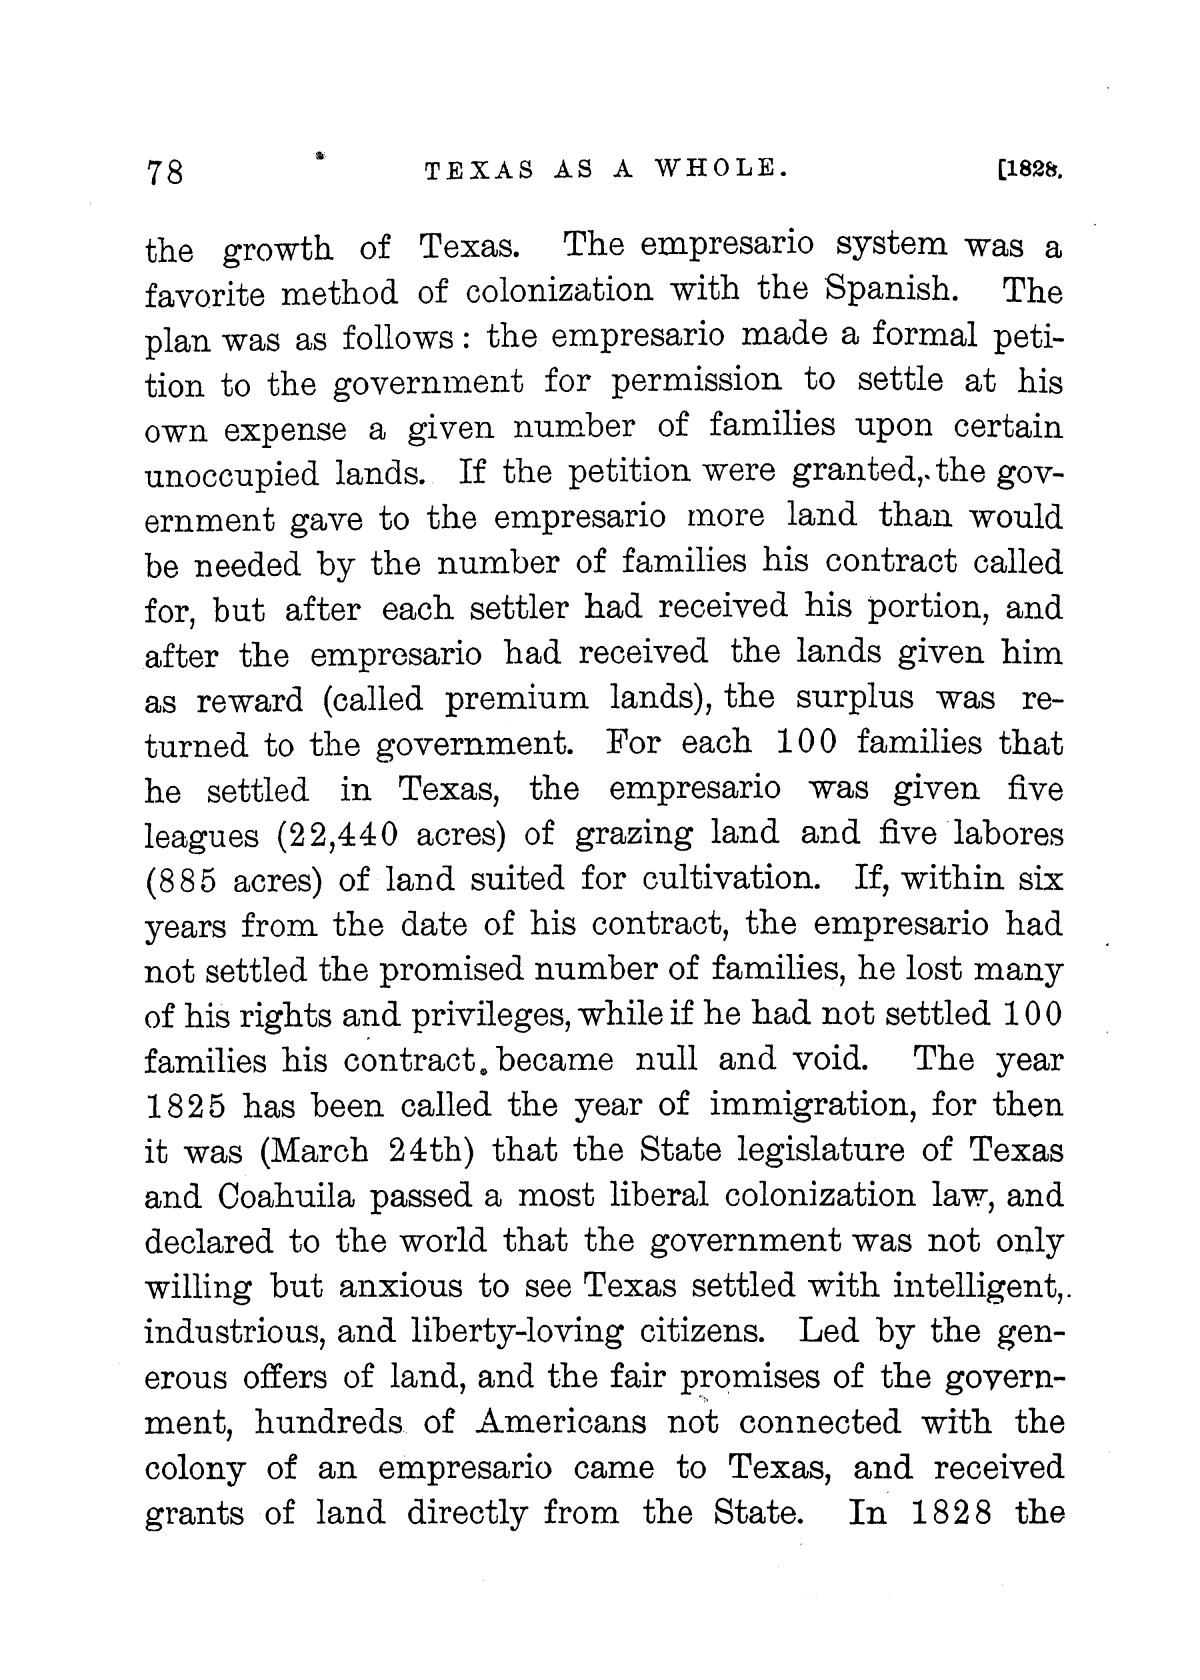 A new history of Texas for schools : also for general reading and for teachers preparing themselves for examination                                                                                                      [Sequence #]: 94 of 412